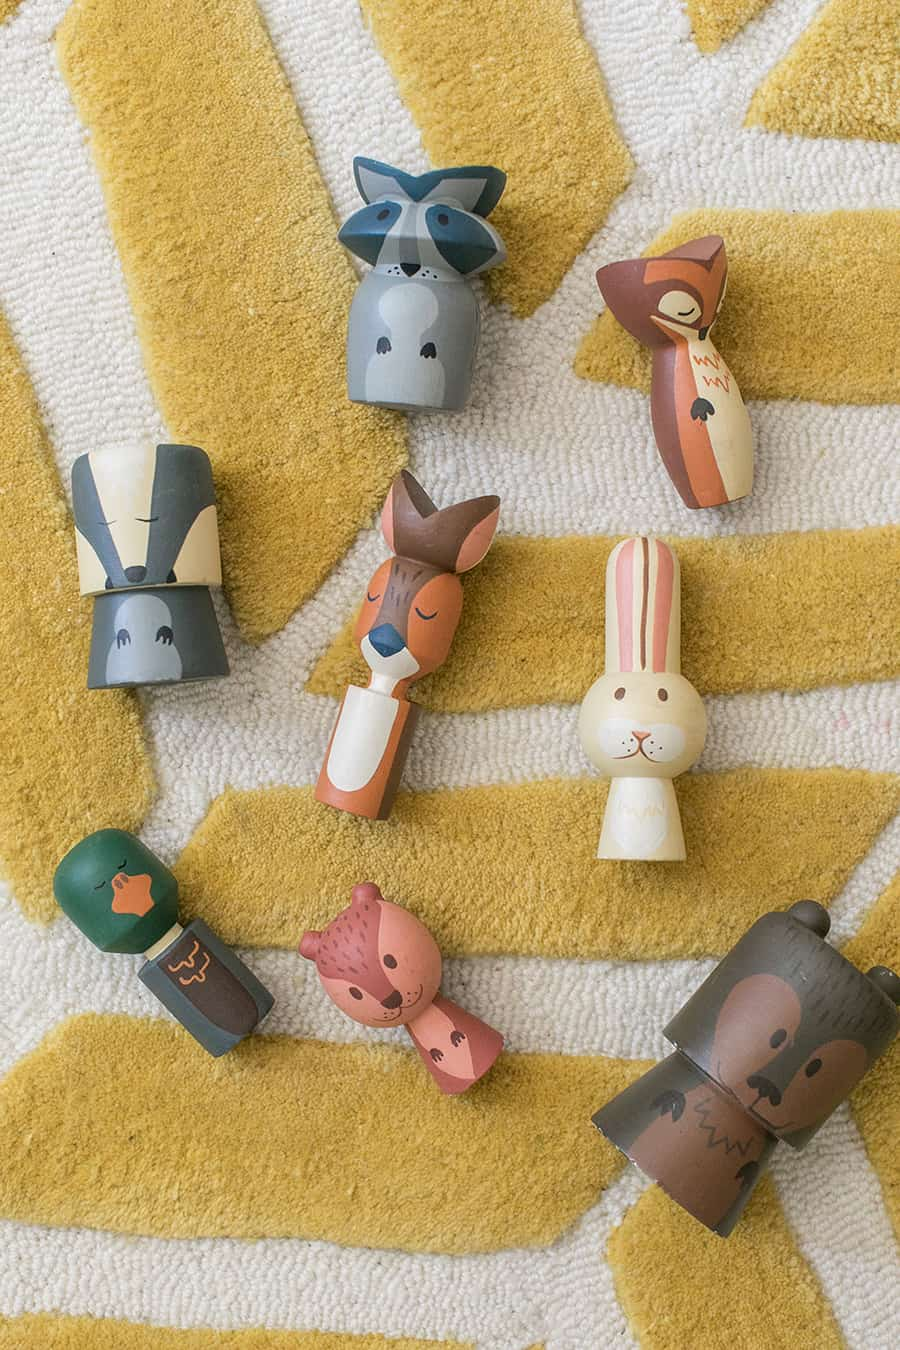 Wooden critters on a yellow rug